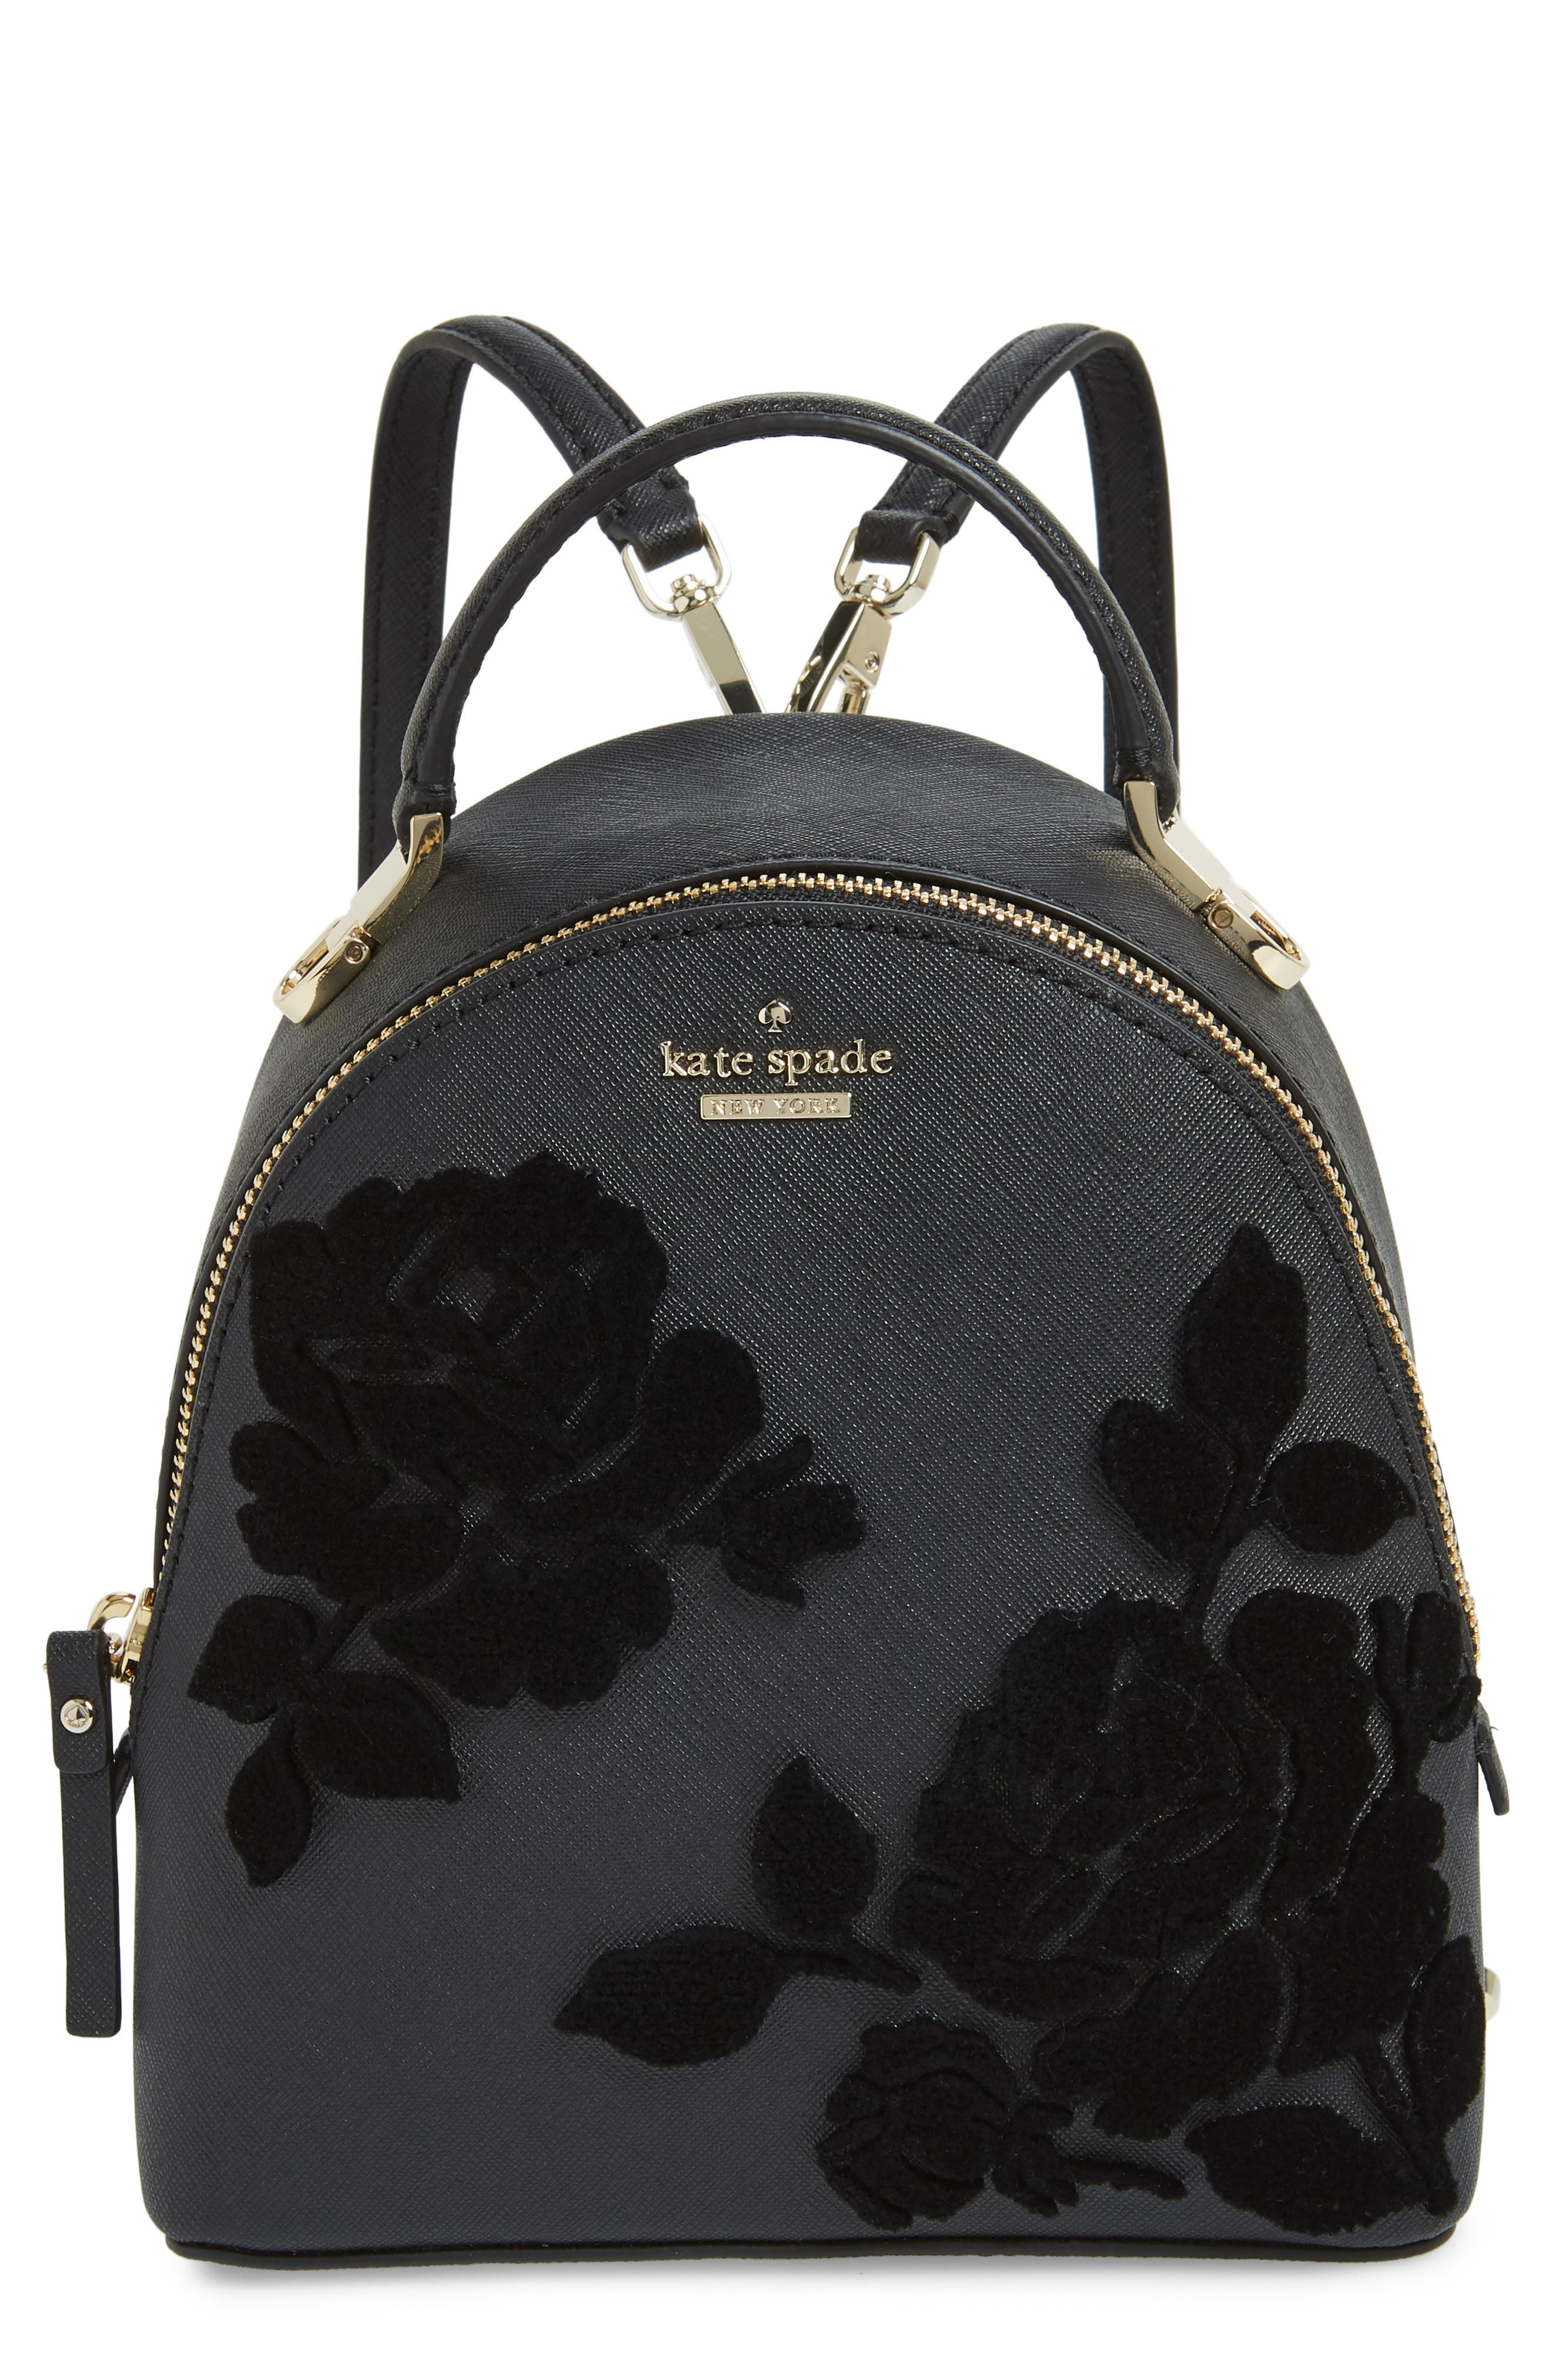 cameron street flock roses convertible backpack,                         Main,                         color, 001